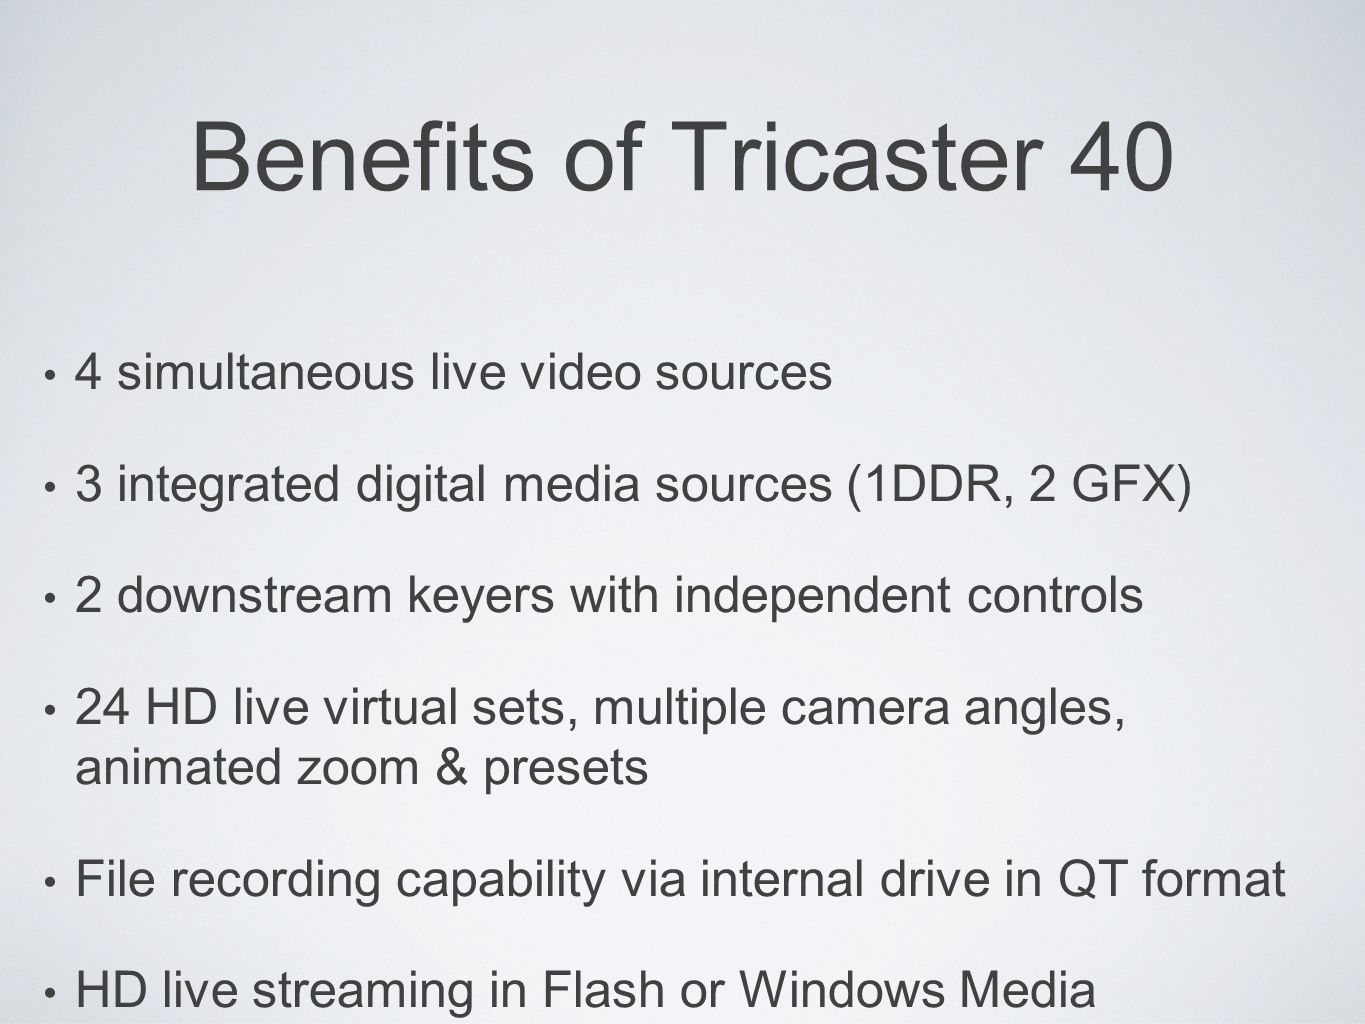 Benefits of Tricaster 40 4 simultaneous live video sources 3 integrated digital media sources (1DDR, 2 GFX) 2 downstream keyers with independent controls 24 HD live virtual sets, multiple camera angles, animated zoom & presets File recording capability via internal drive in QT format HD live streaming in Flash or Windows Media Push/Pull